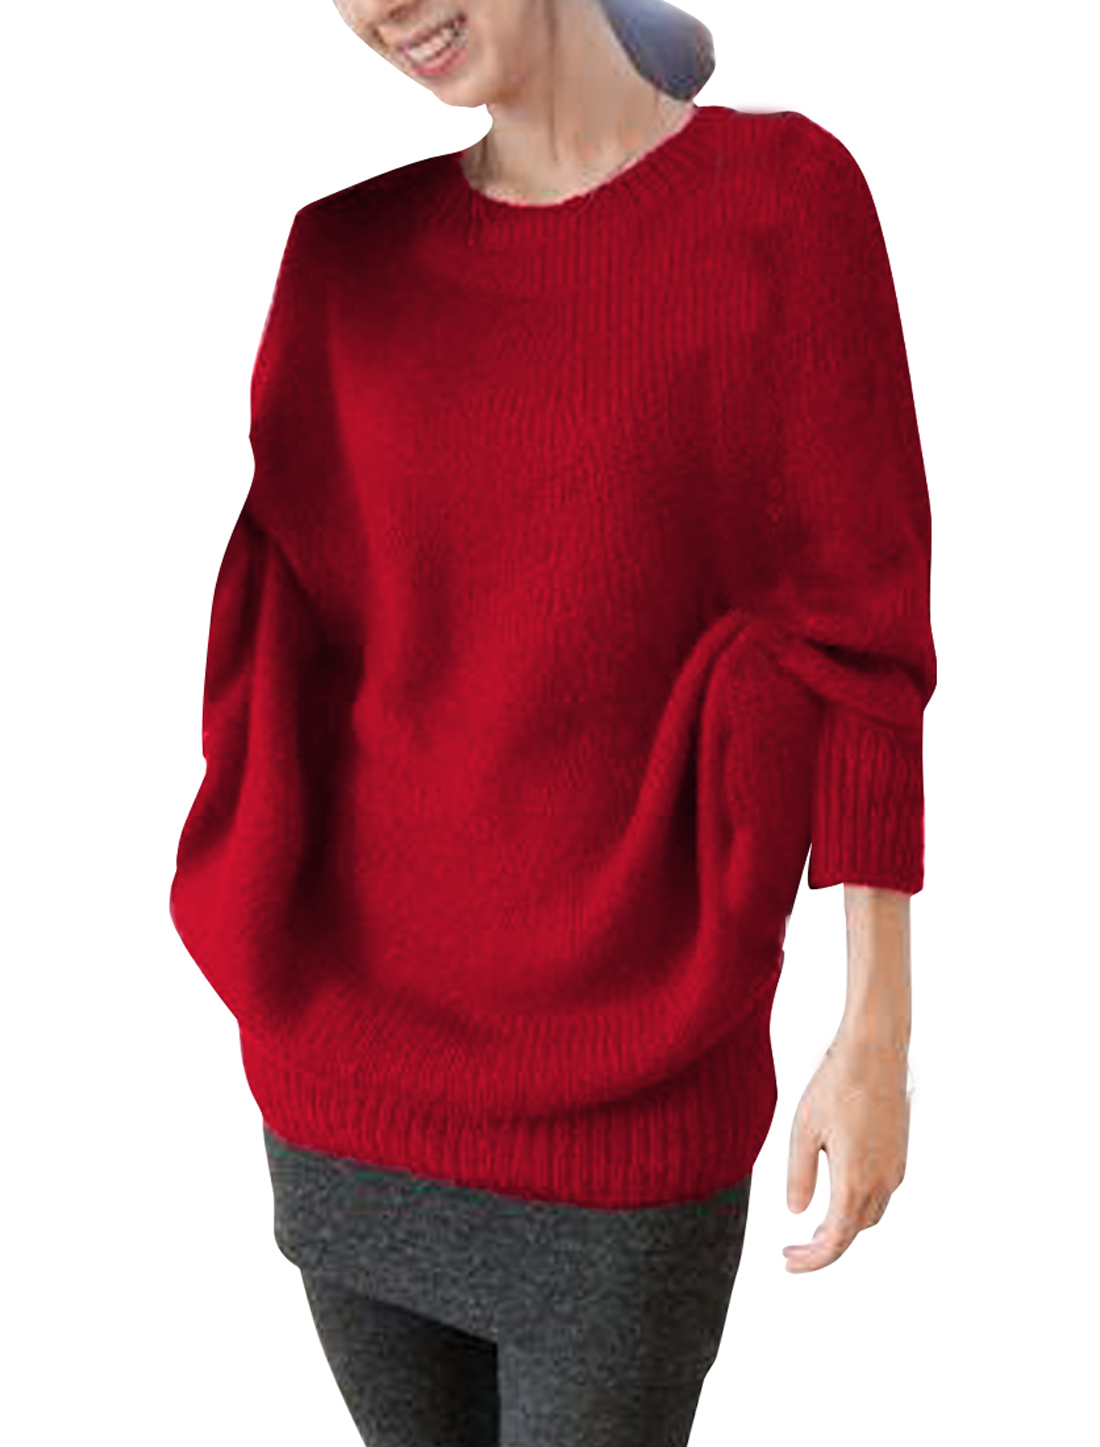 Women's Casual Pullover Solid Red Batwing Sleeve Loose Knitted Sweater S